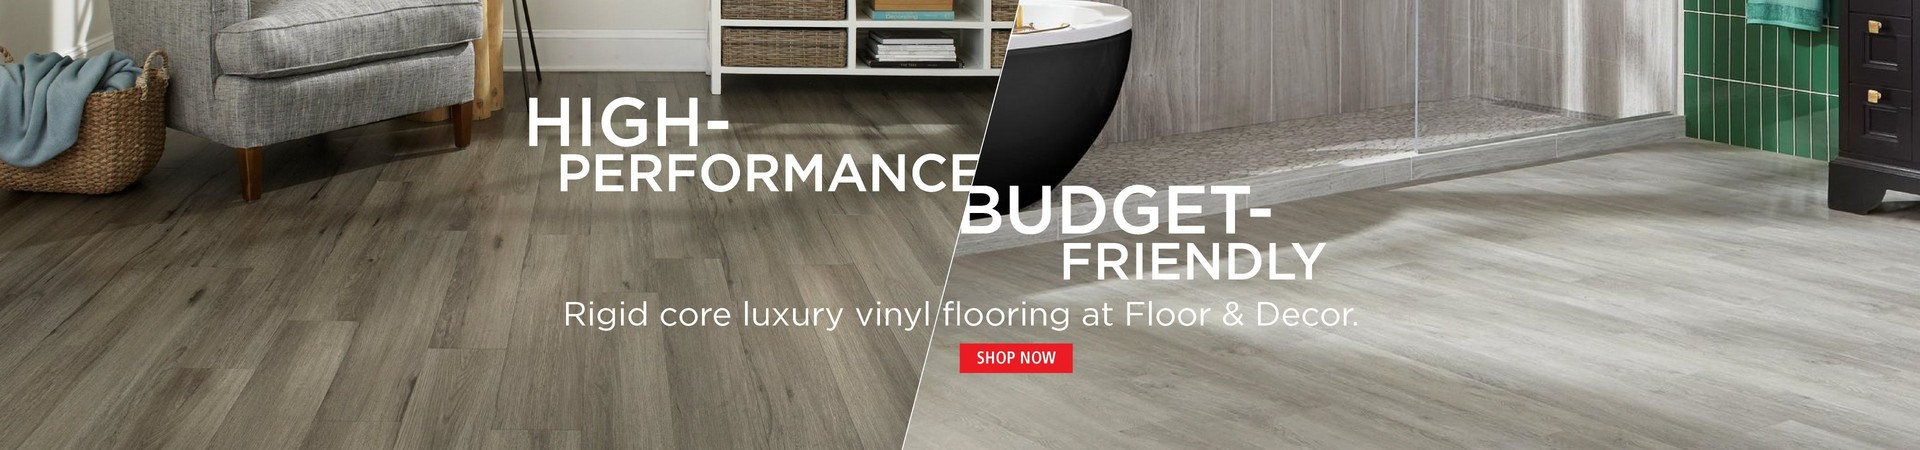 High Performance - Budget Friendly